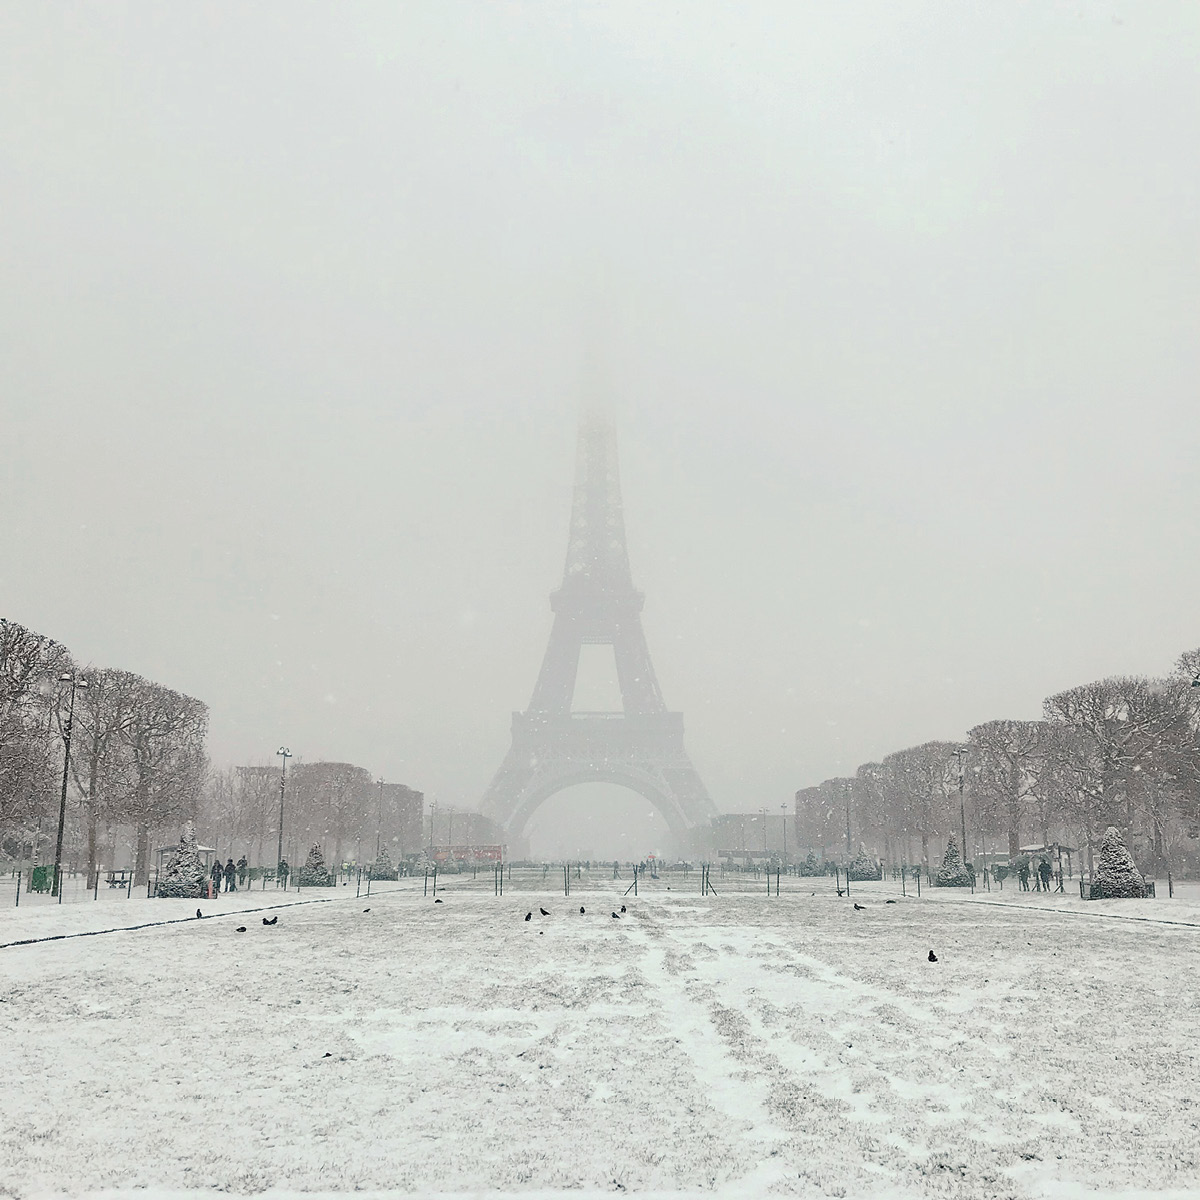 A view of the Eiffel Tower emerging from a snowy sky.